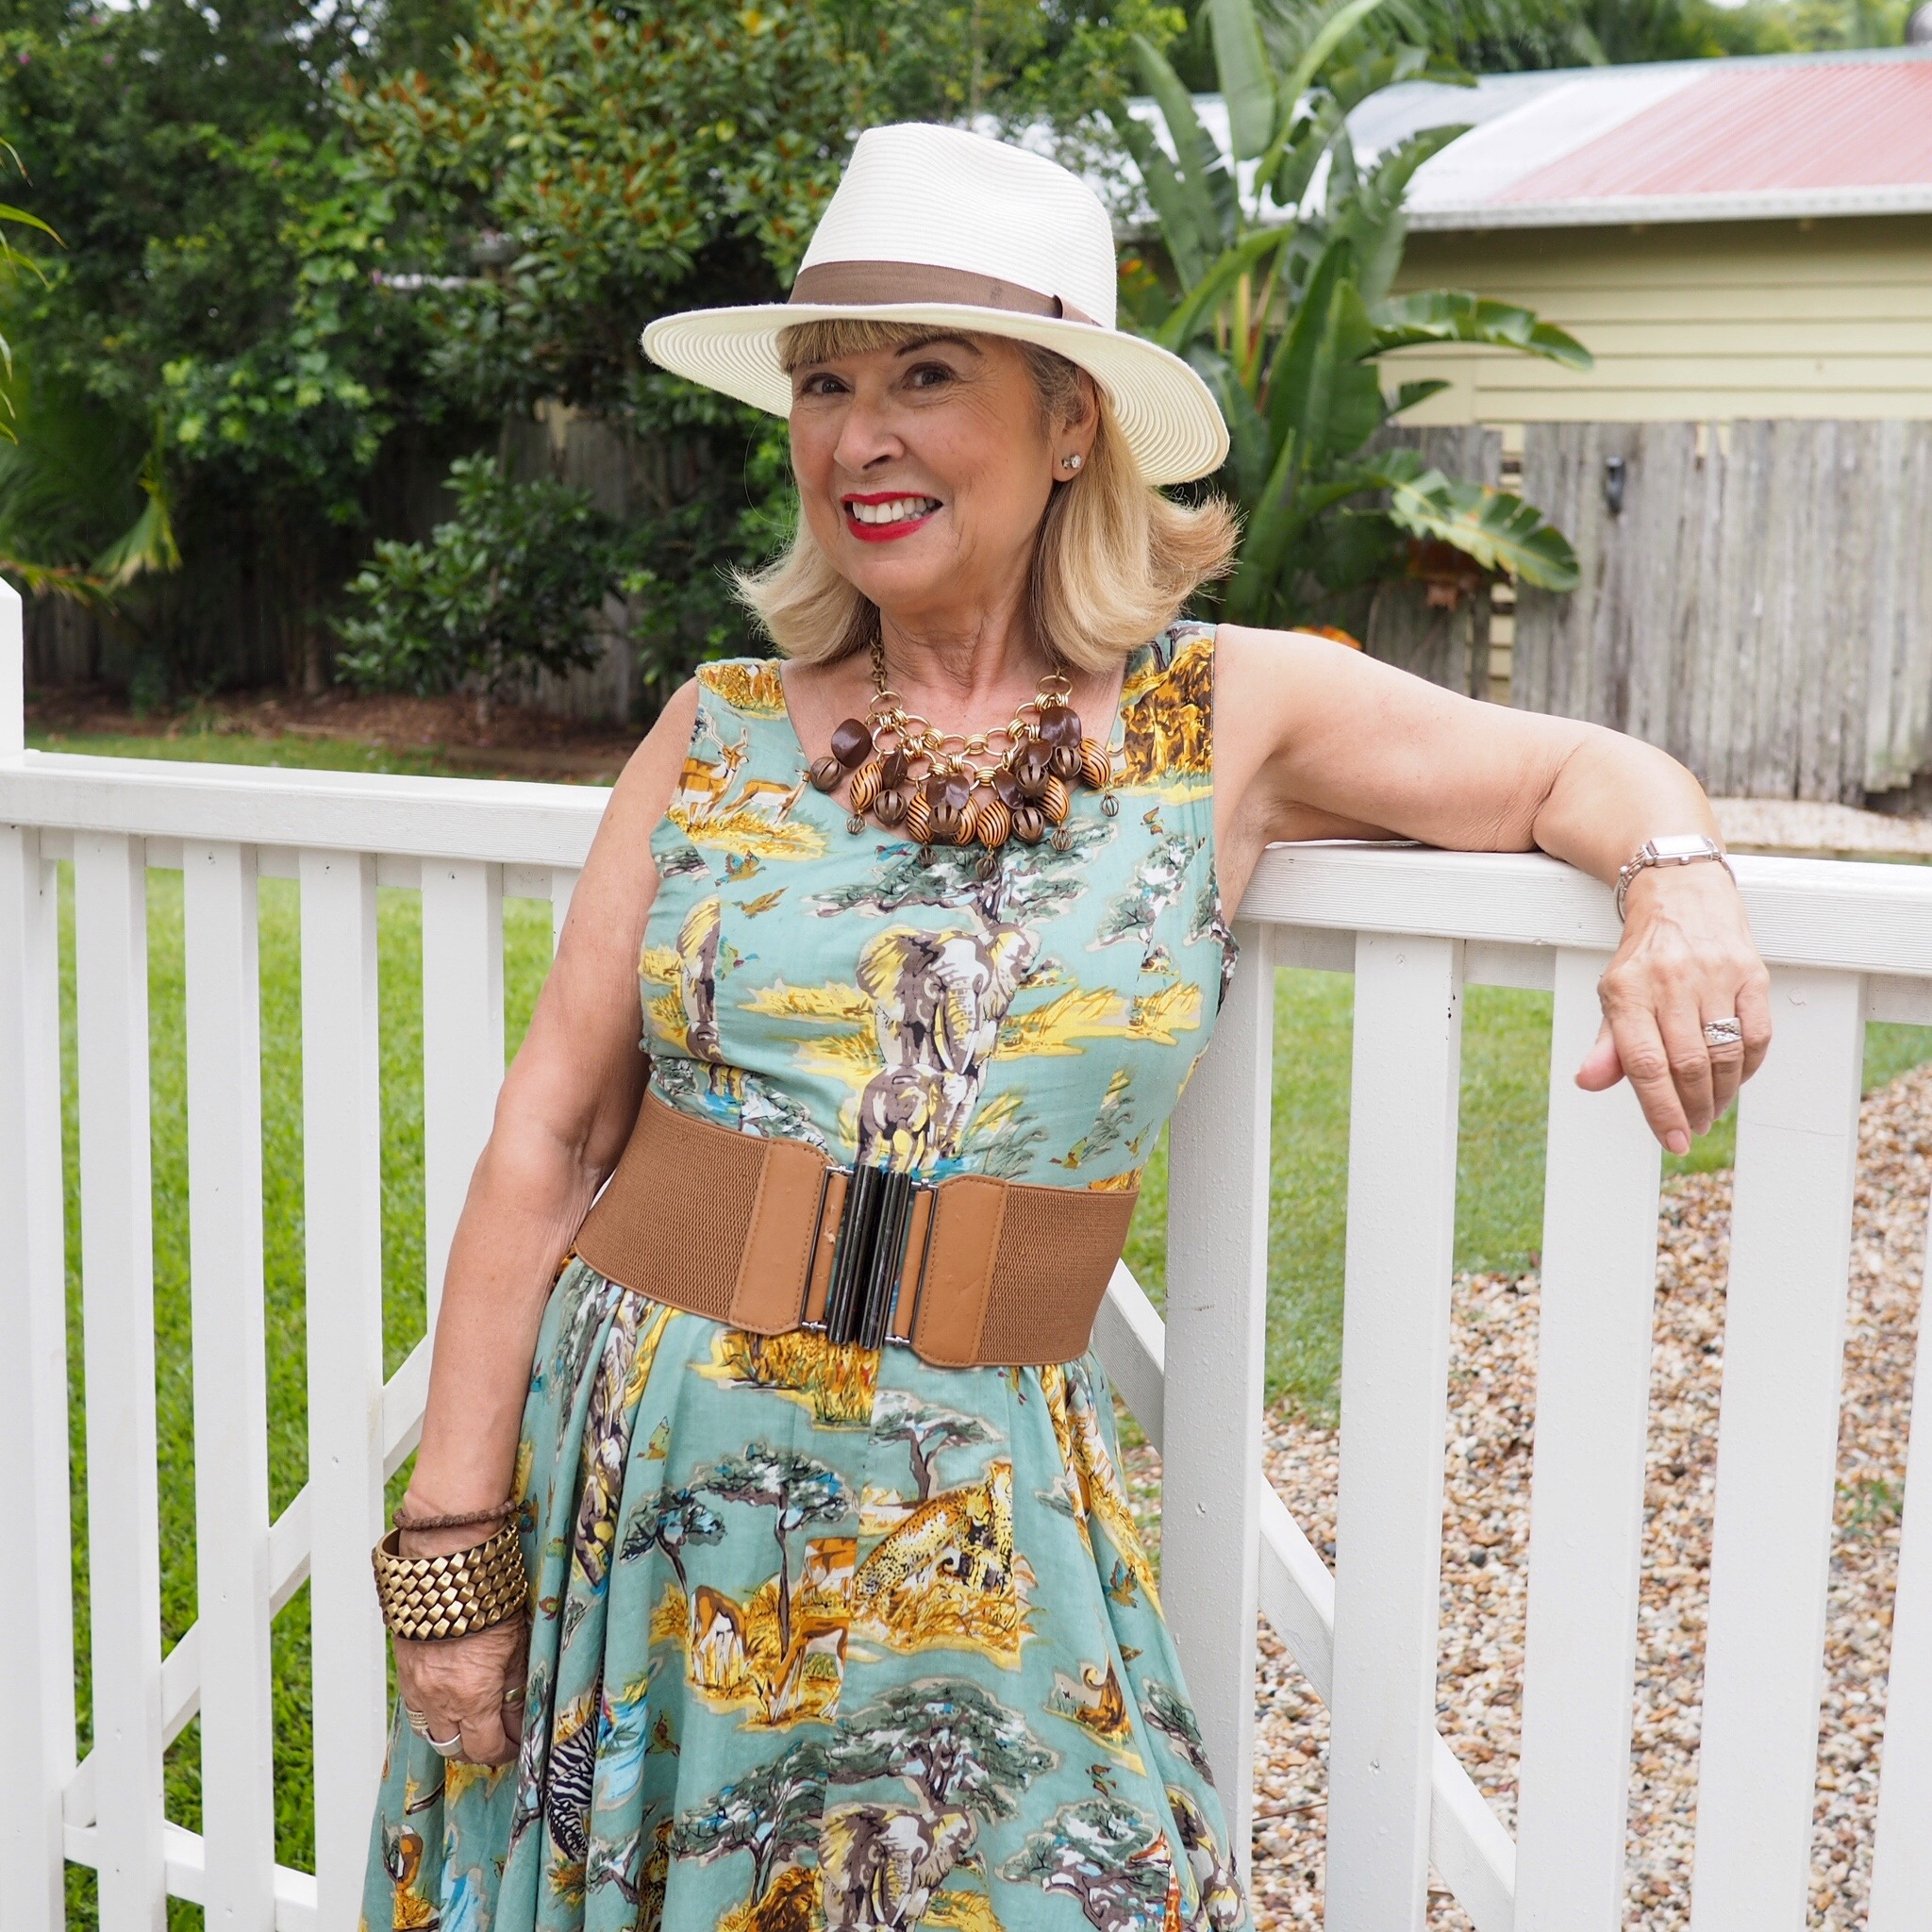 My vintage style cotton summer dress with accessories to make it more formal.